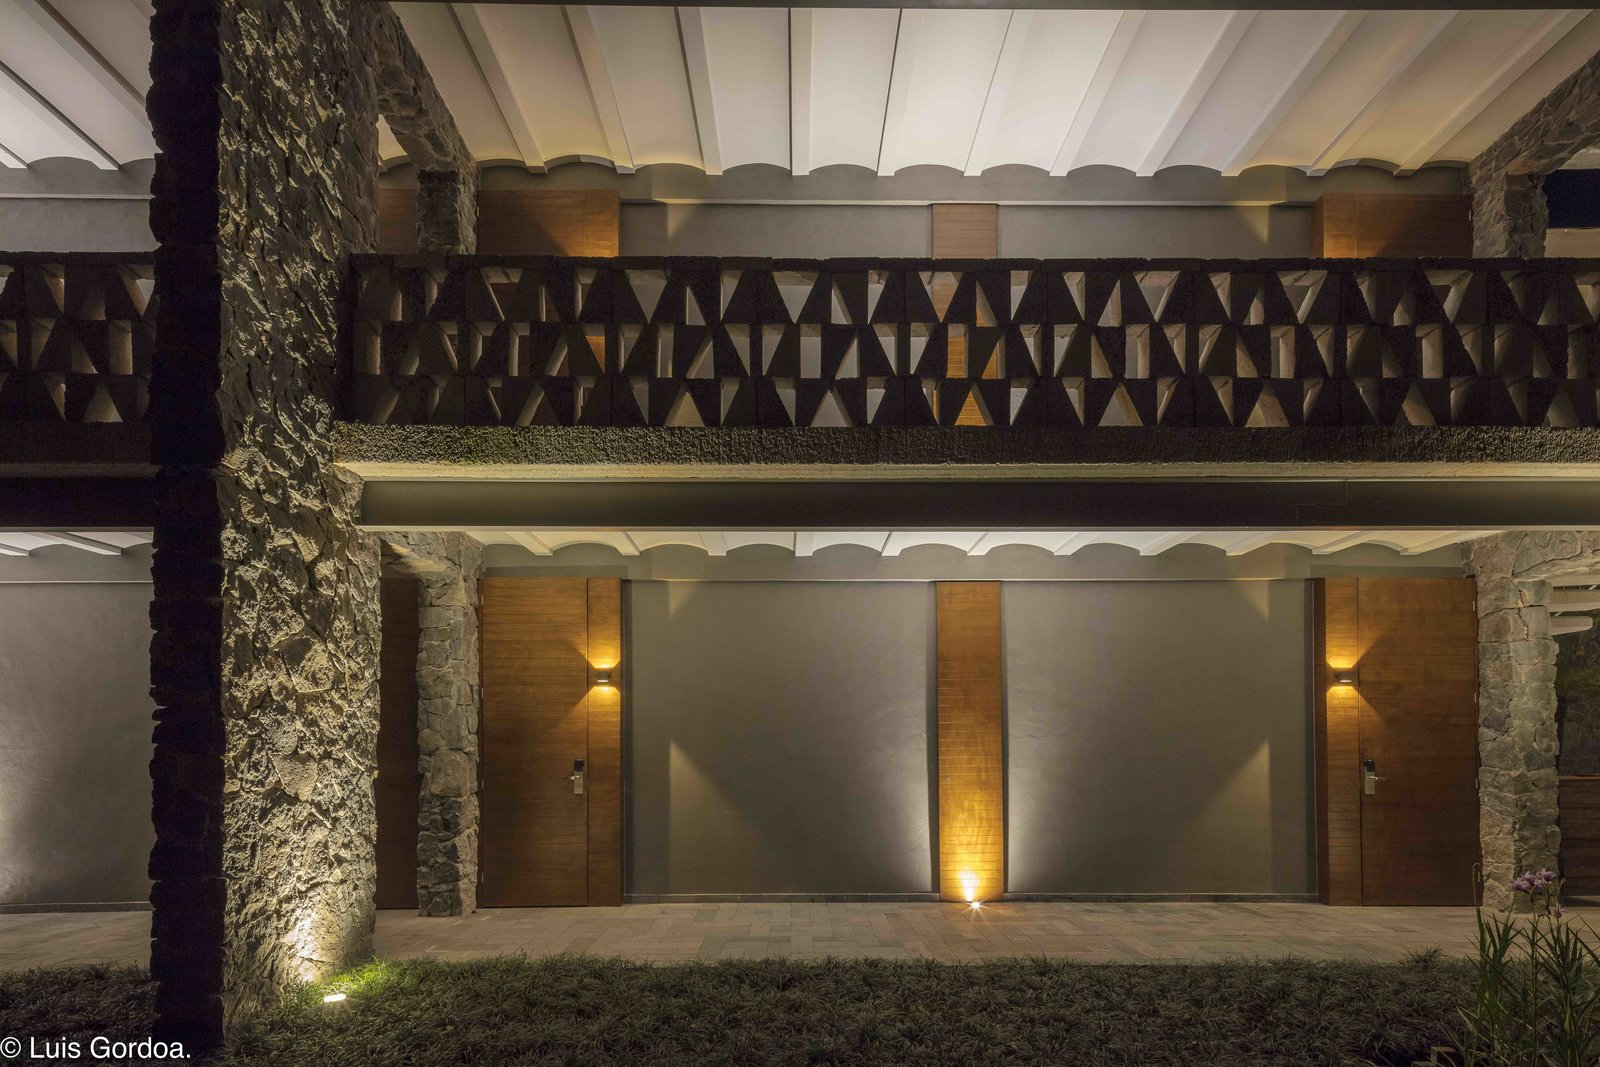 Exterior, Stone Siding Material, Concrete Siding Material, and Wood Siding Material The structural combination of concrete and regionally-sourced stone is reflective of Mexican architecture and alludes to the monuments of the ancient Aztecs.  Photo 4 of 12 in A New Hotel in Morelos Combines Local Mexican Elements With Brutalist Architecture